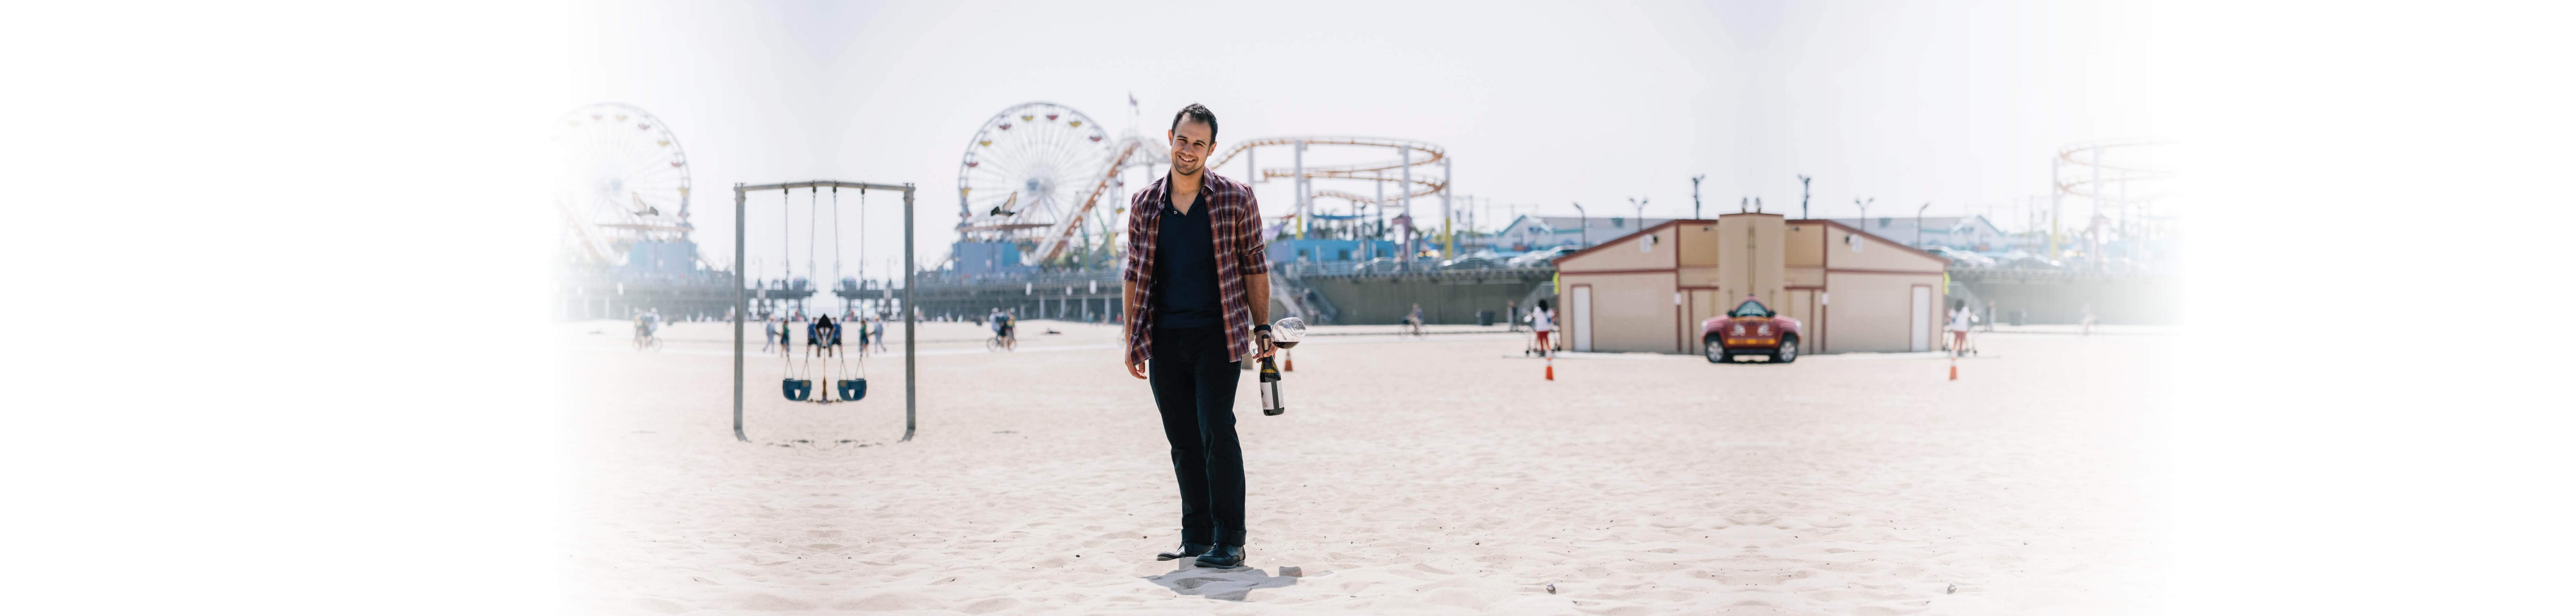 vince anter at santa monica pier with wine